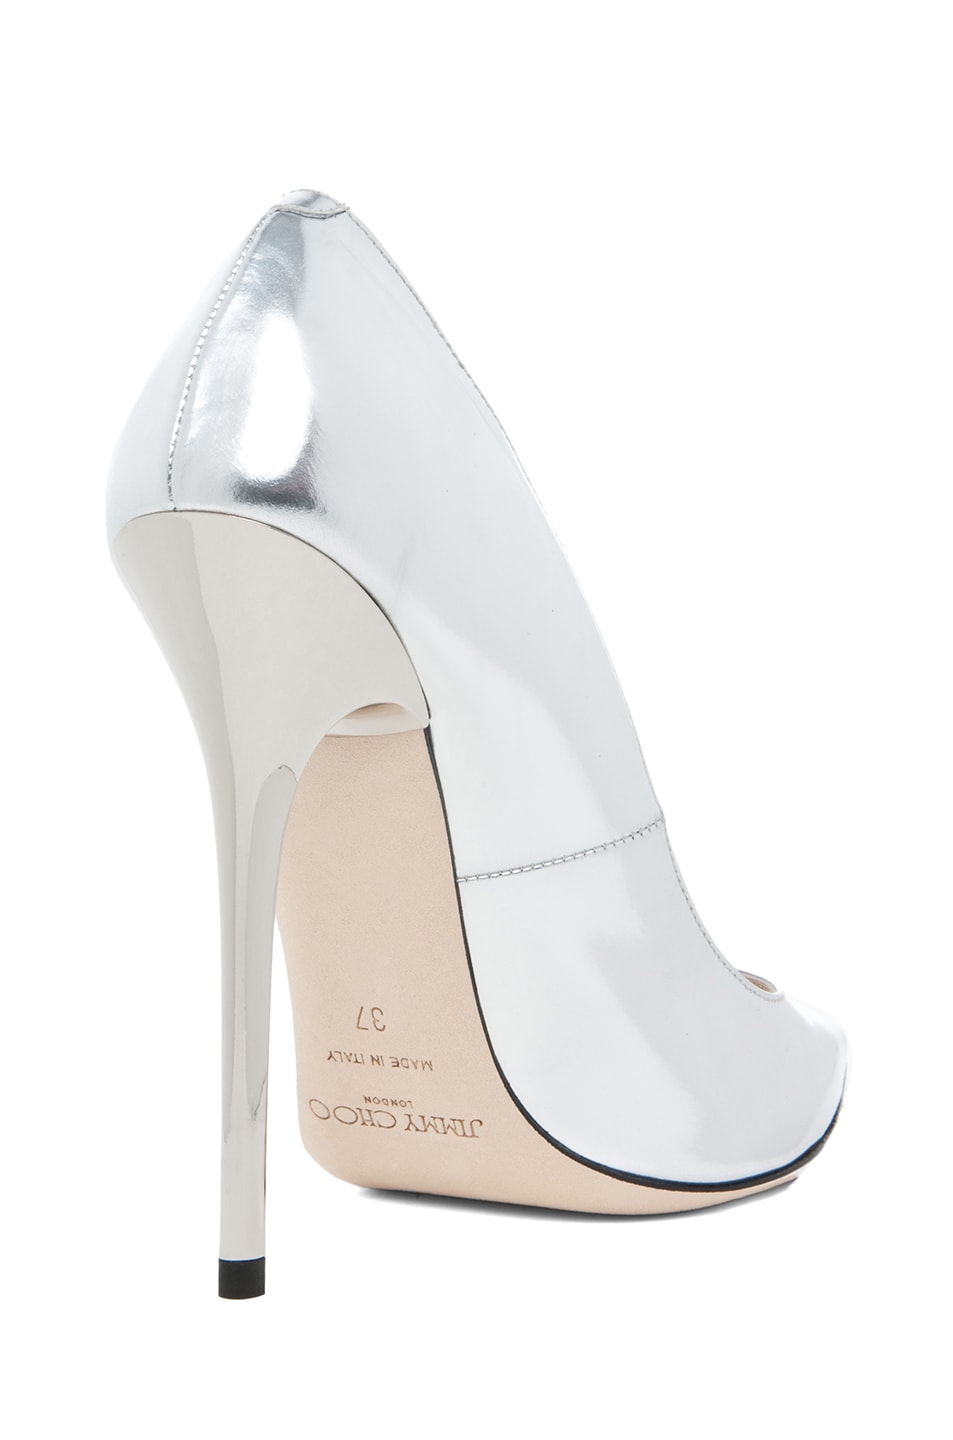 Image 3 of Jimmy Choo Anouk Heel in Silver